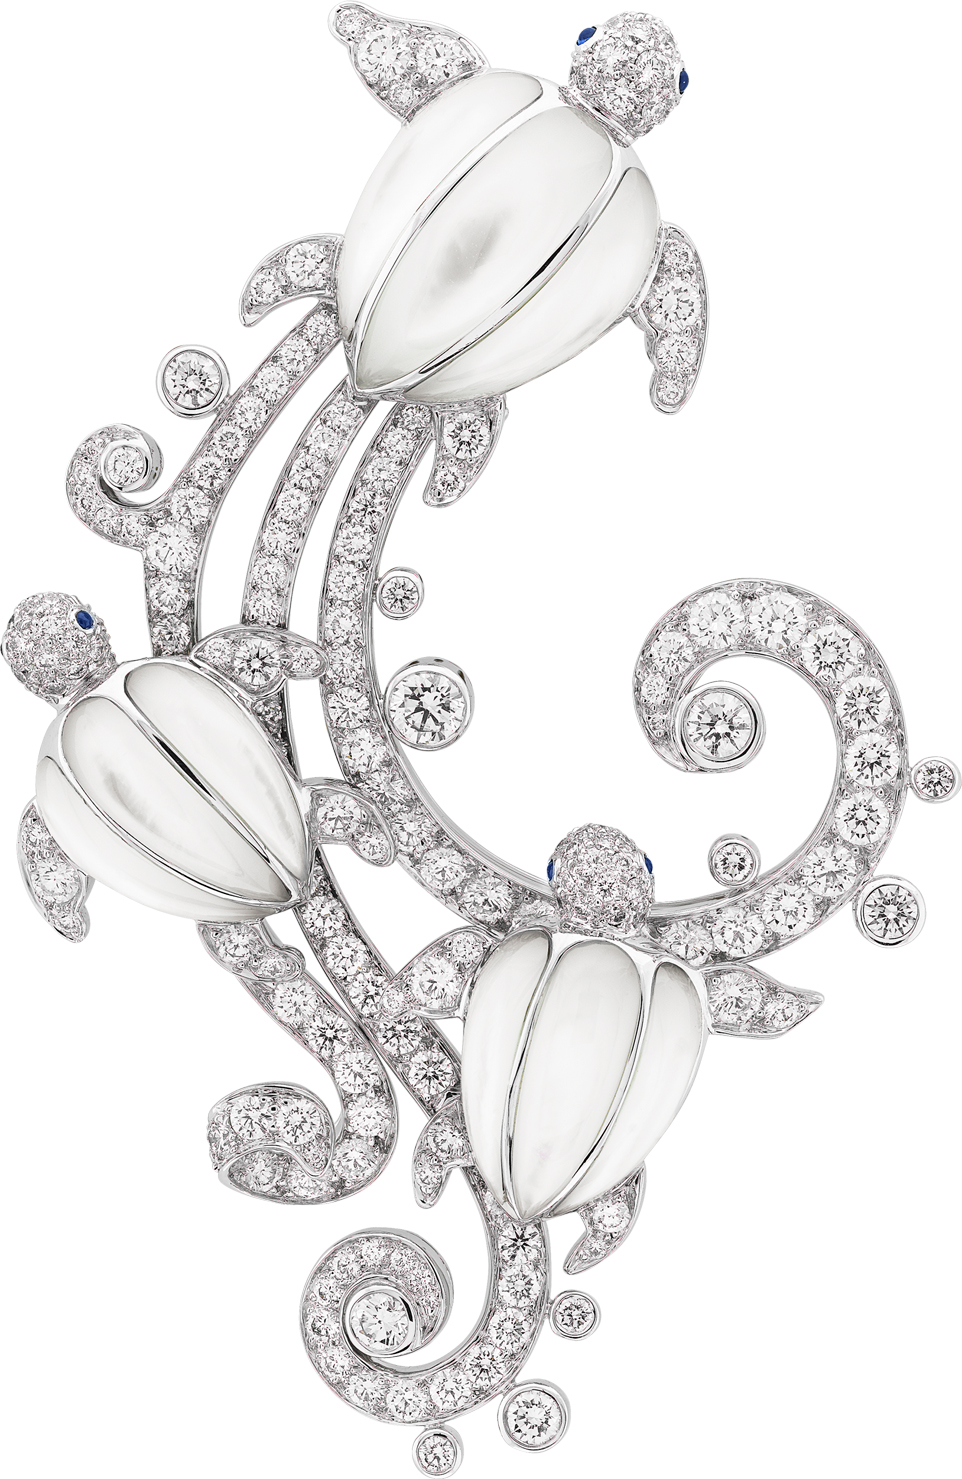 Trois Tortues Clip. White gold, diamonds, cabochon-cut sapphires, white mother-of-pearl.